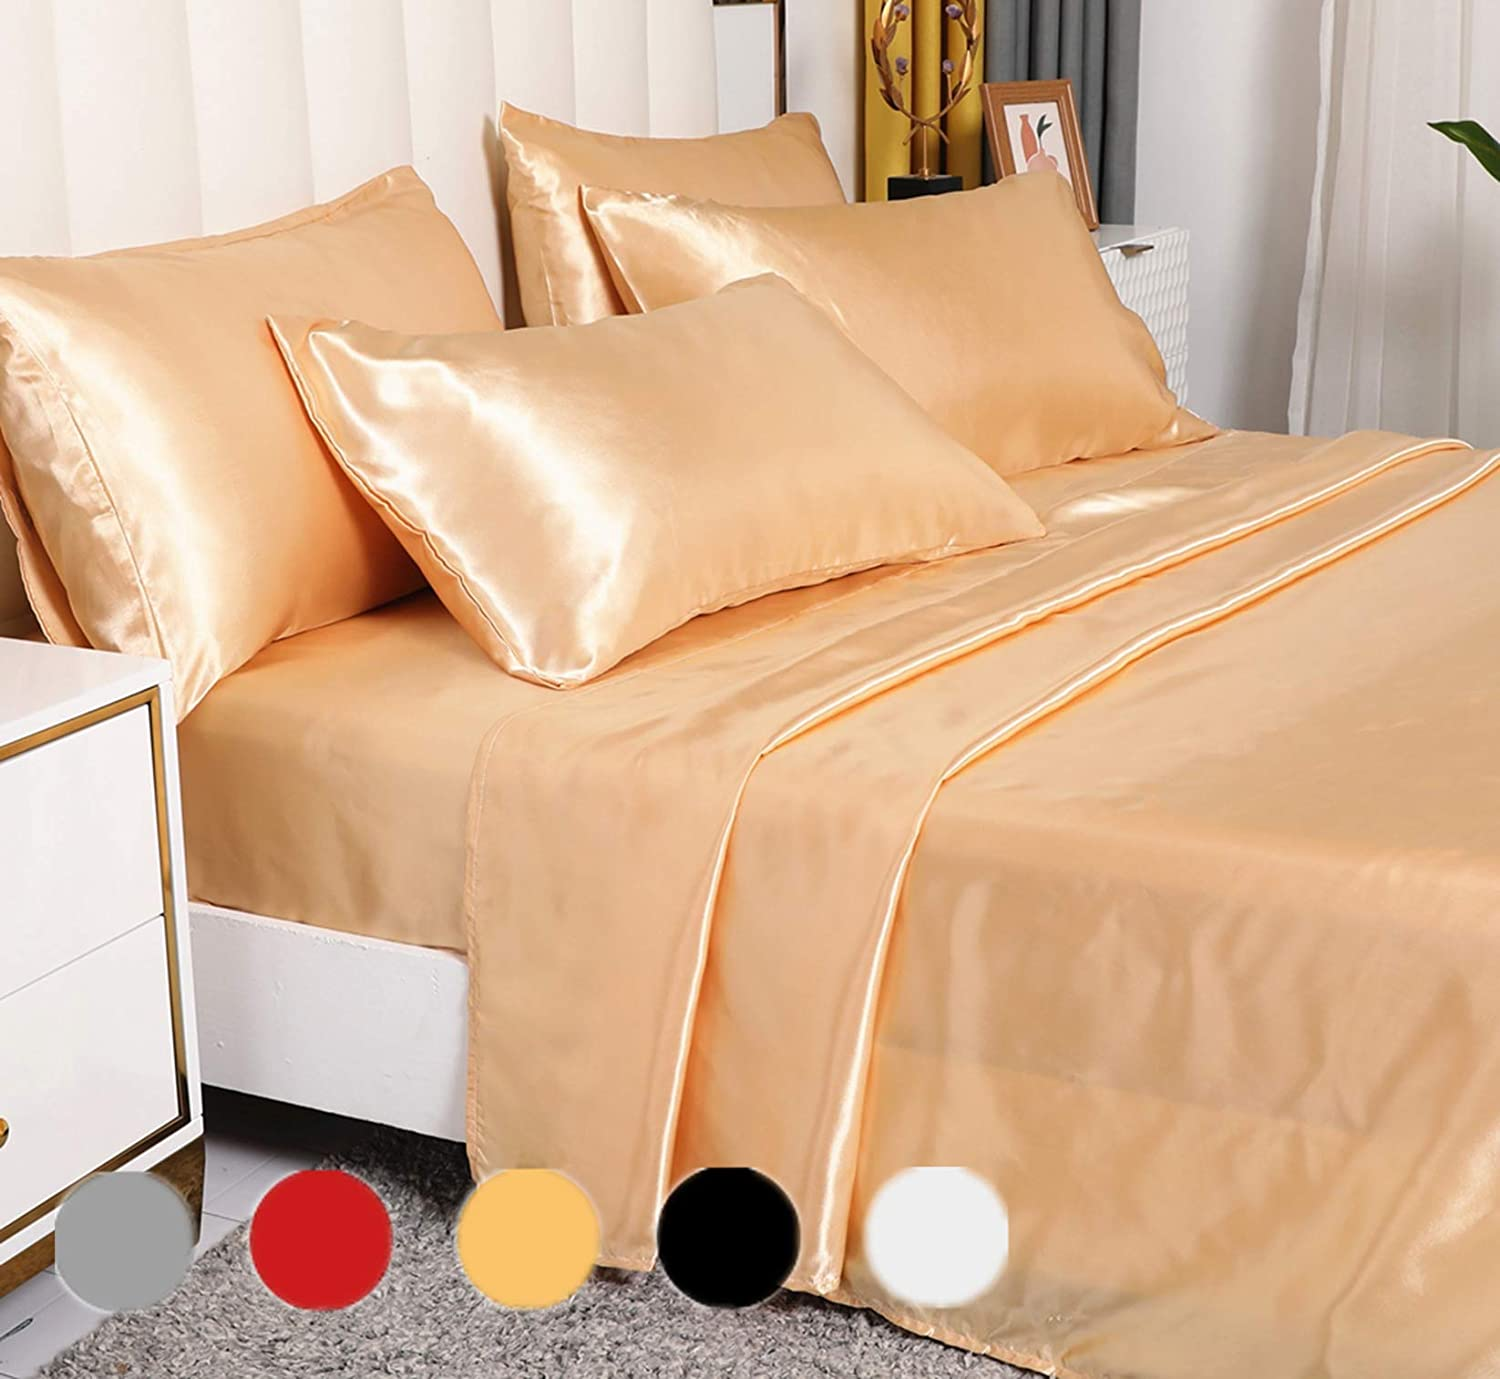 6 Pieces Silk Bed Sheet Set Luxury Rich Satin Smooth And Silky With Deep Pocket Fitted Sheet Solid Color Ultra Soft Hypoallergenic Reversible Stain Resistant Queen Champagne Kitchen Dining